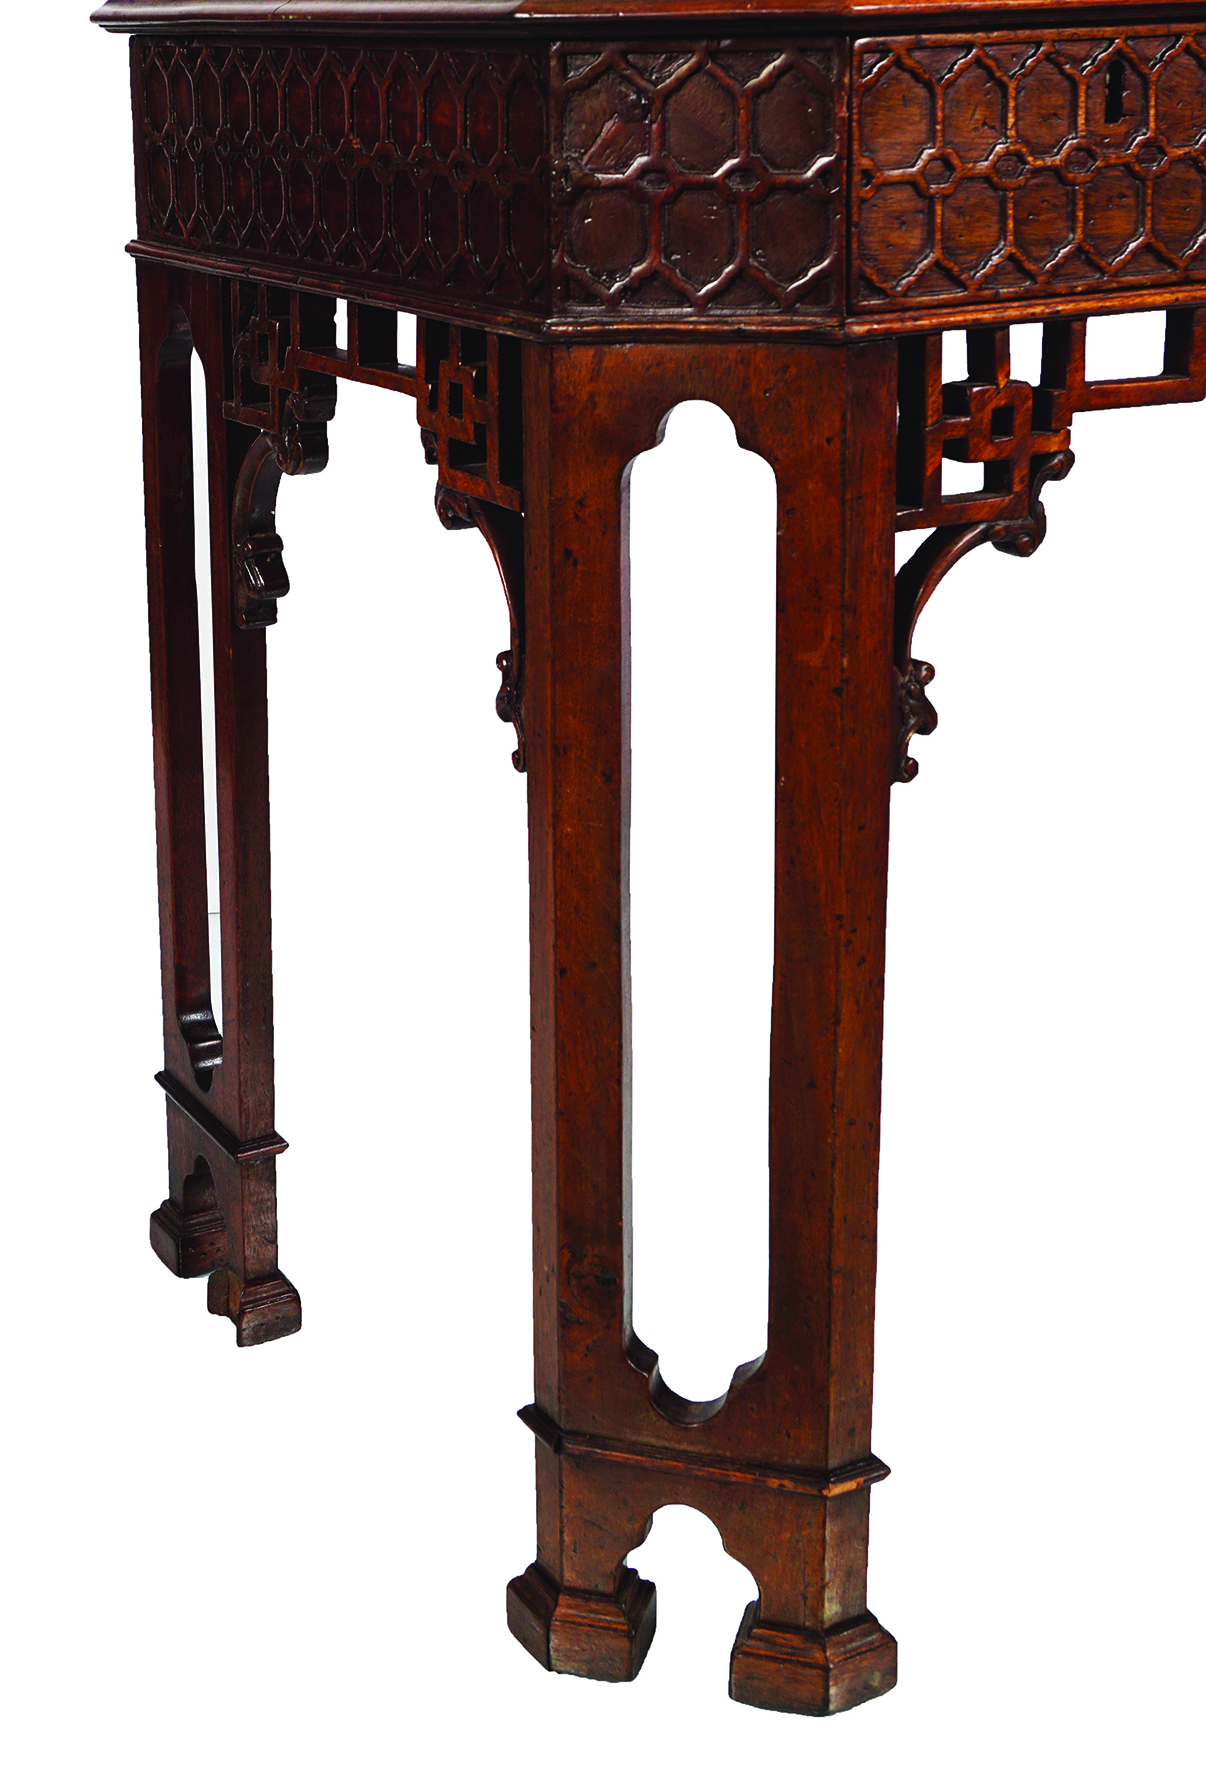 18TH-CENTURY PERIOD CHINESE CHIPPENDALE TABLE - Image 3 of 7